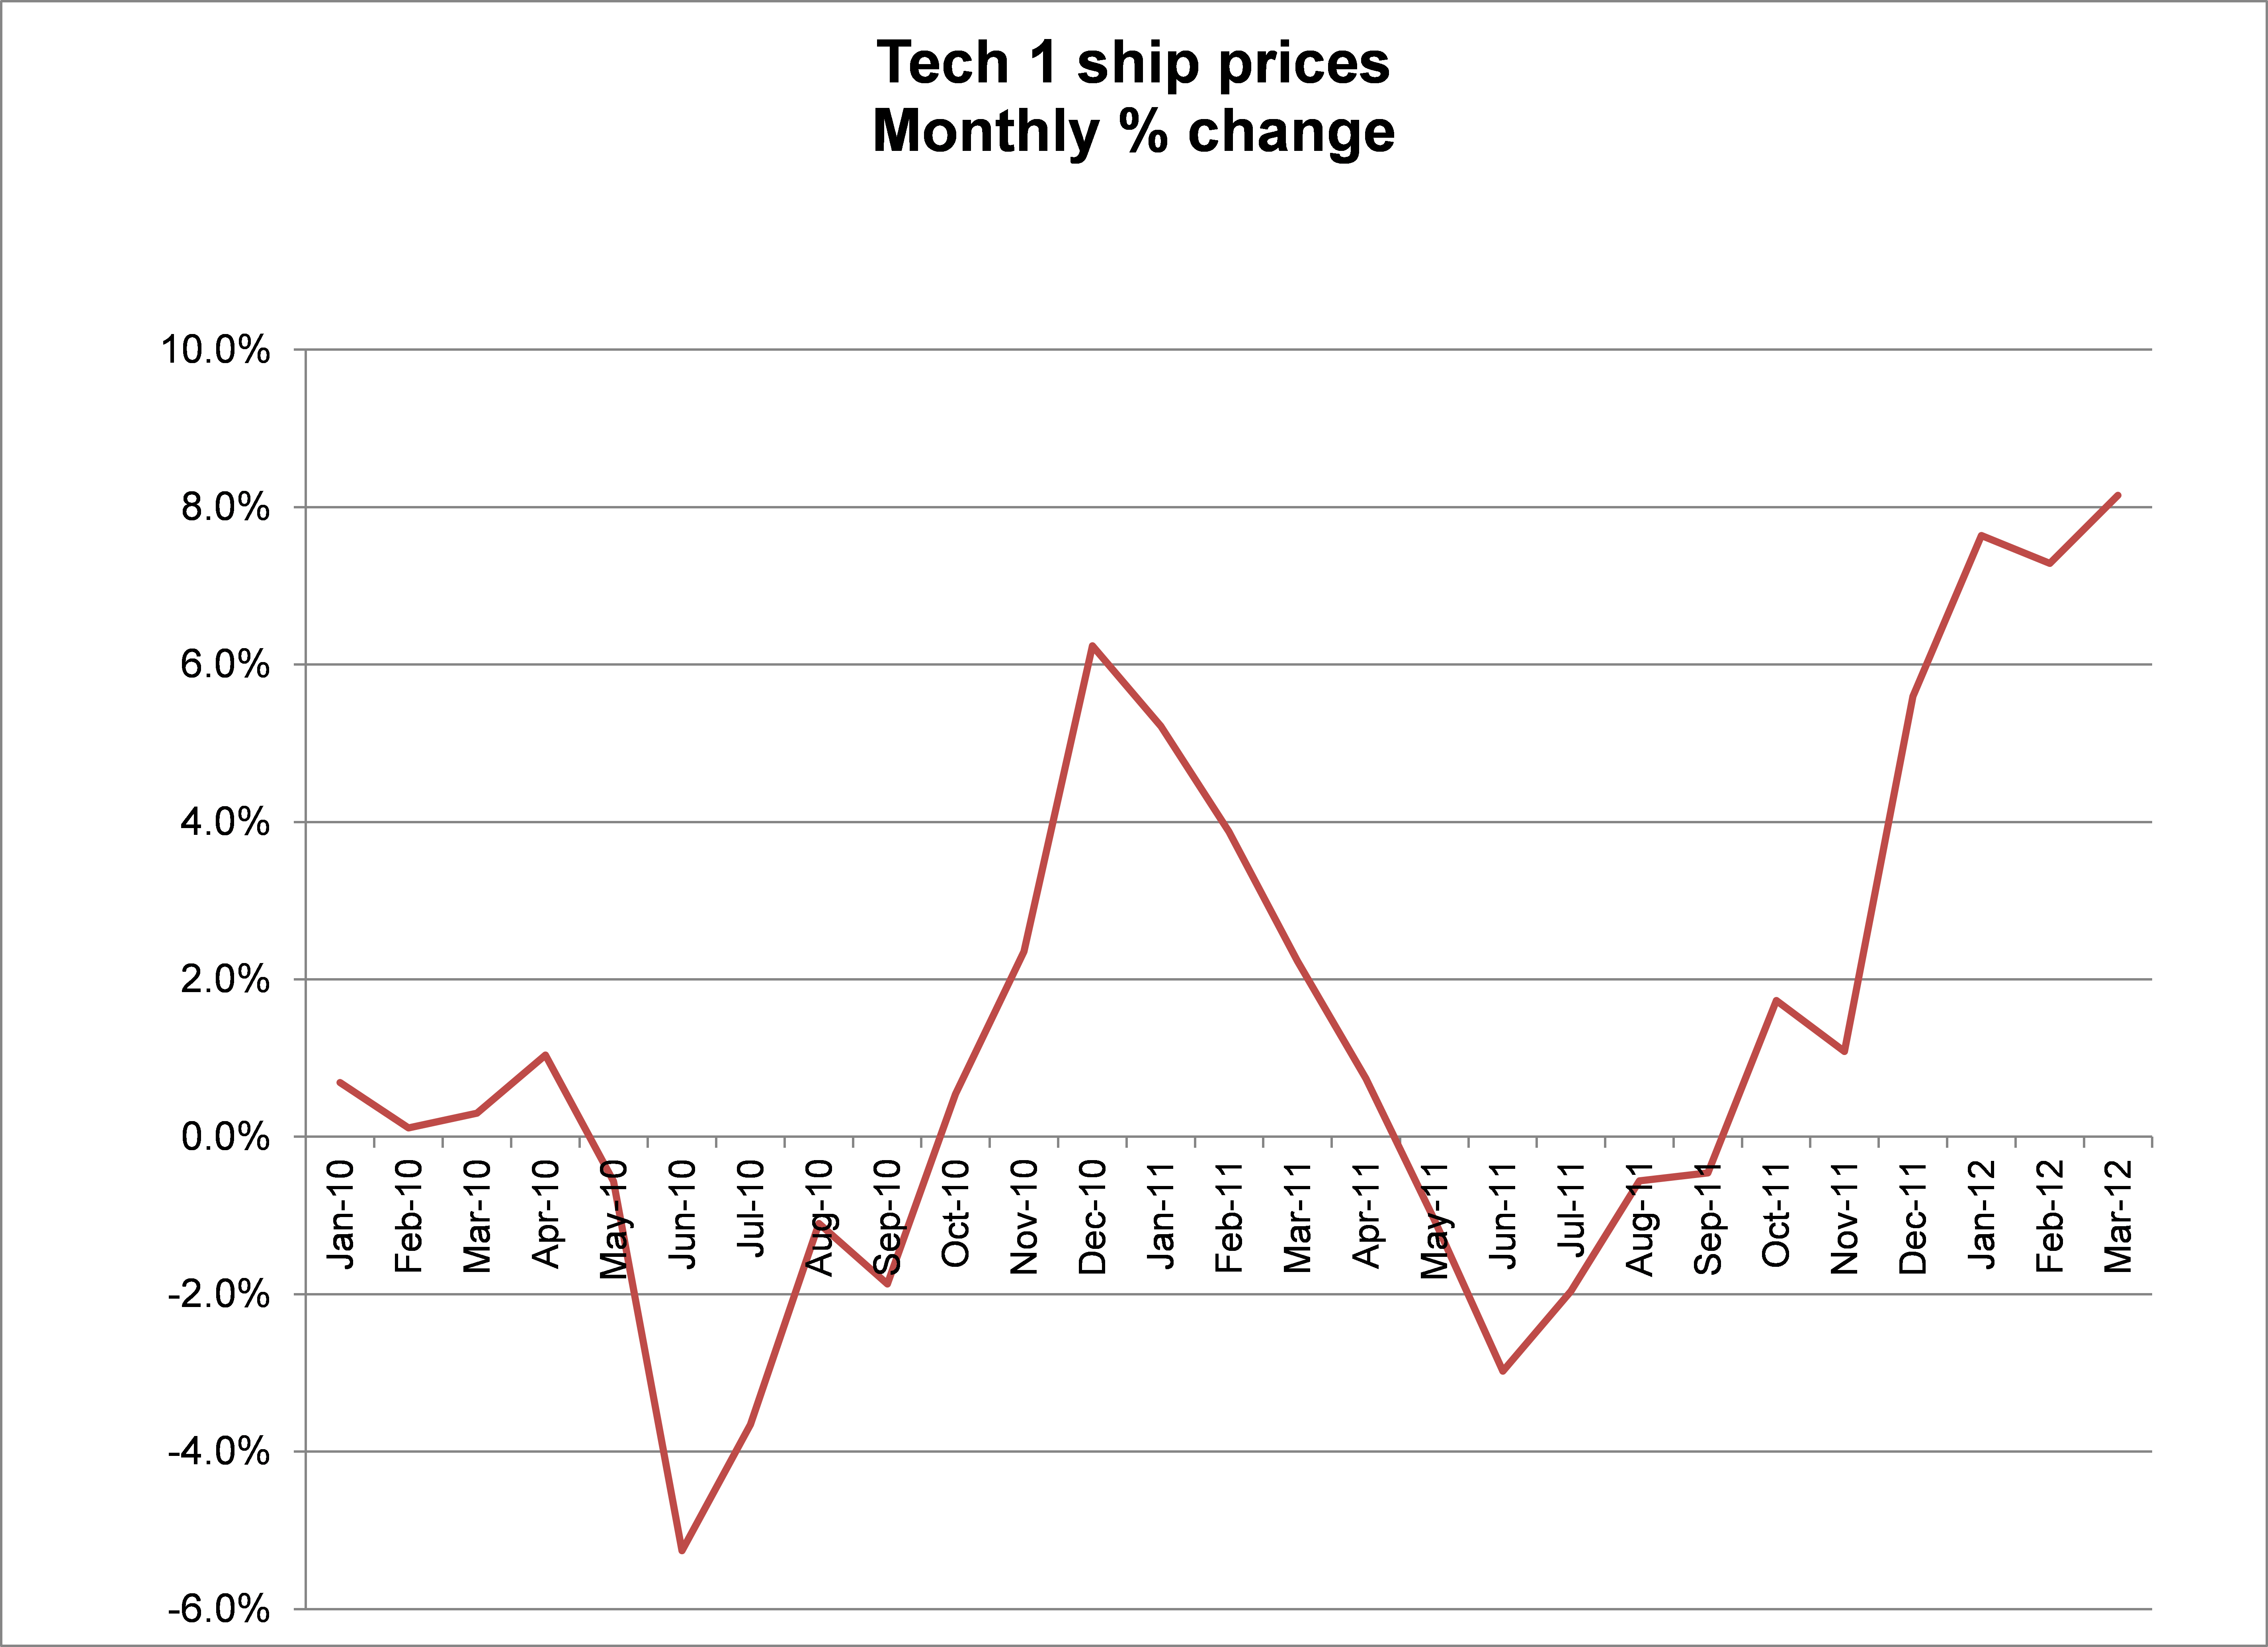 Tech 1 ship prices